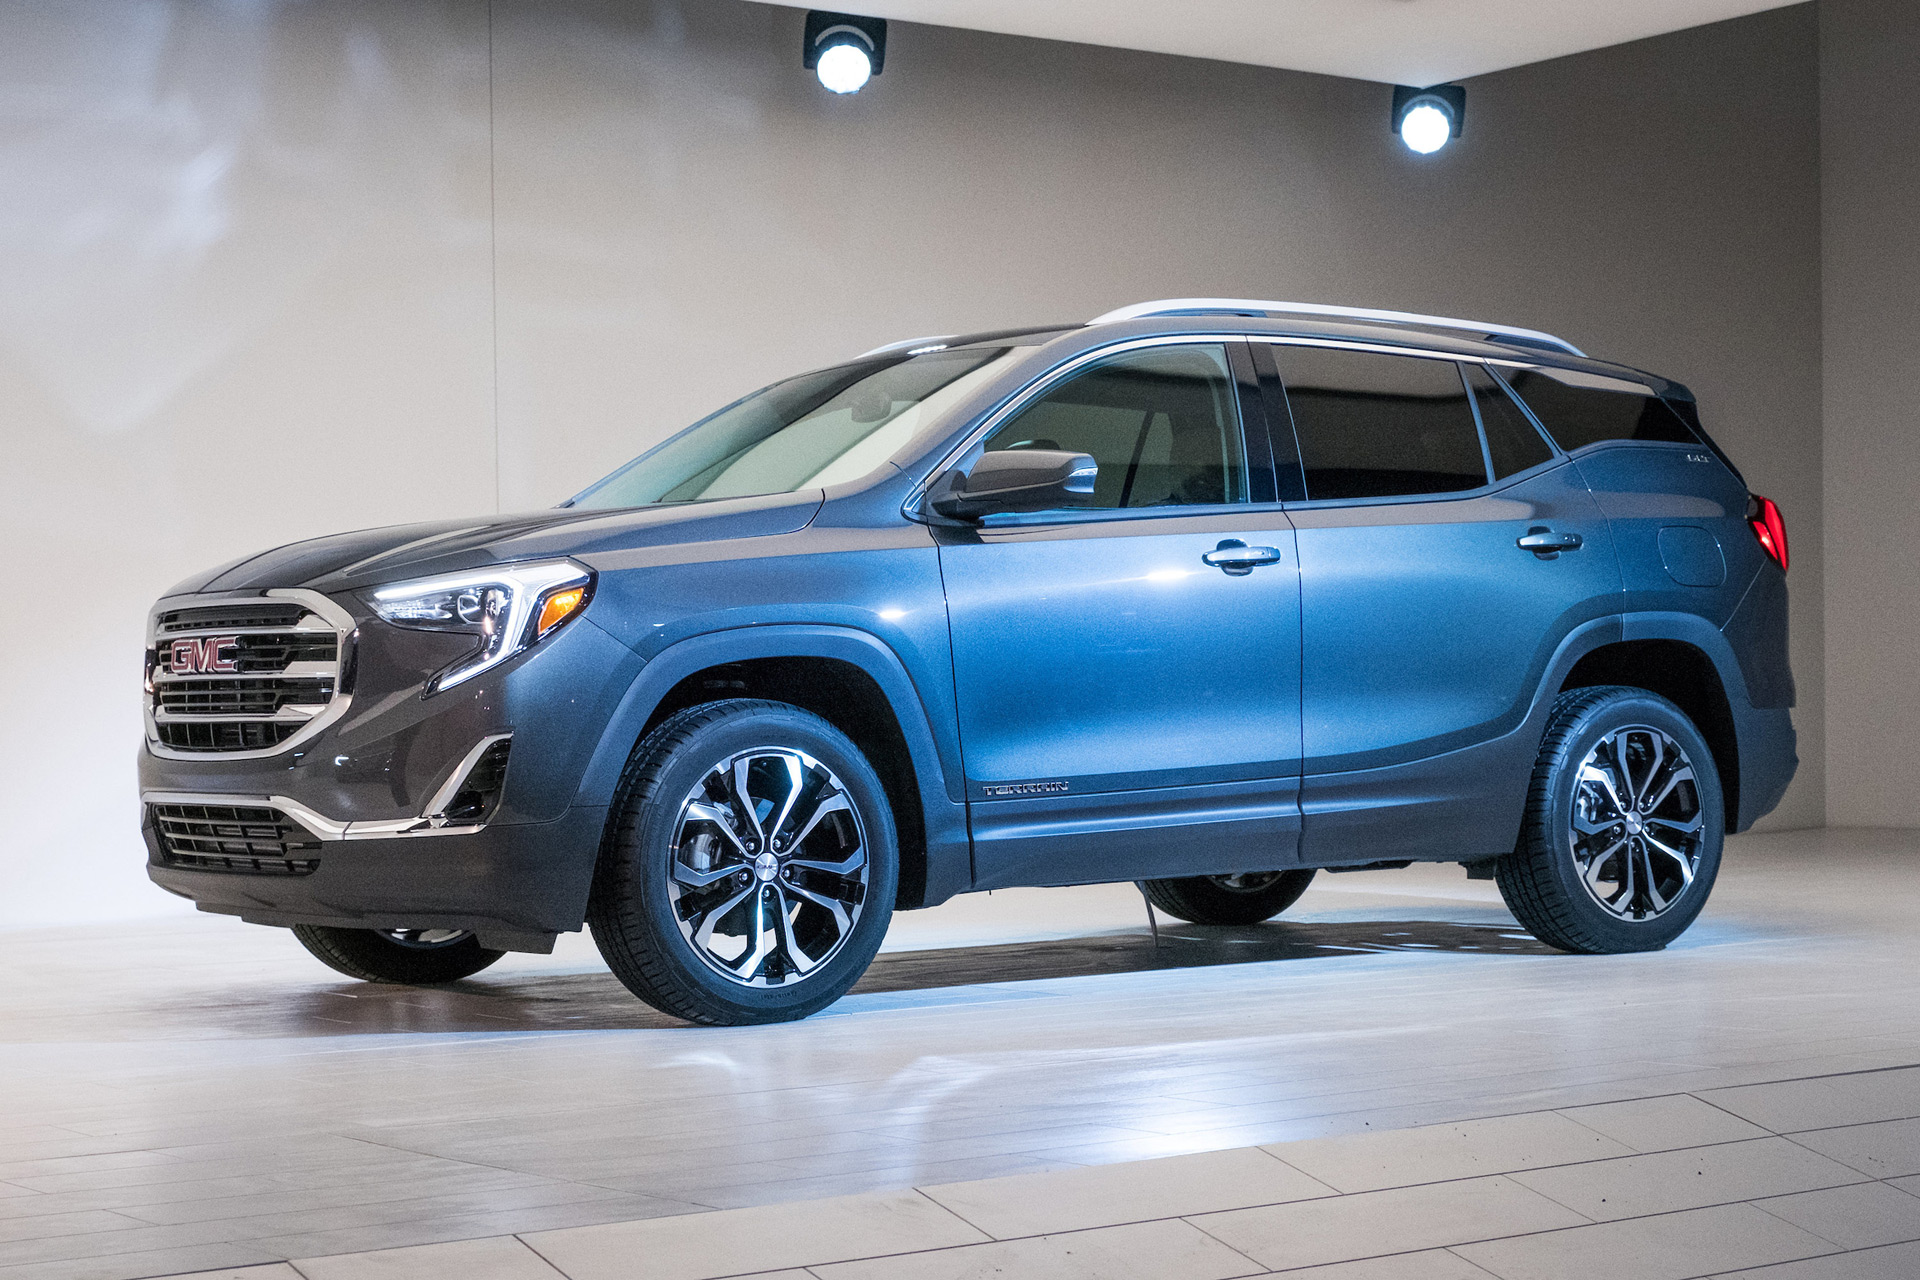 2018 gmc terrain pictures.  pictures 2018 gmc terrain lexus ls f150 goes diesel whatu0027s new  the car  connection on gmc terrain pictures